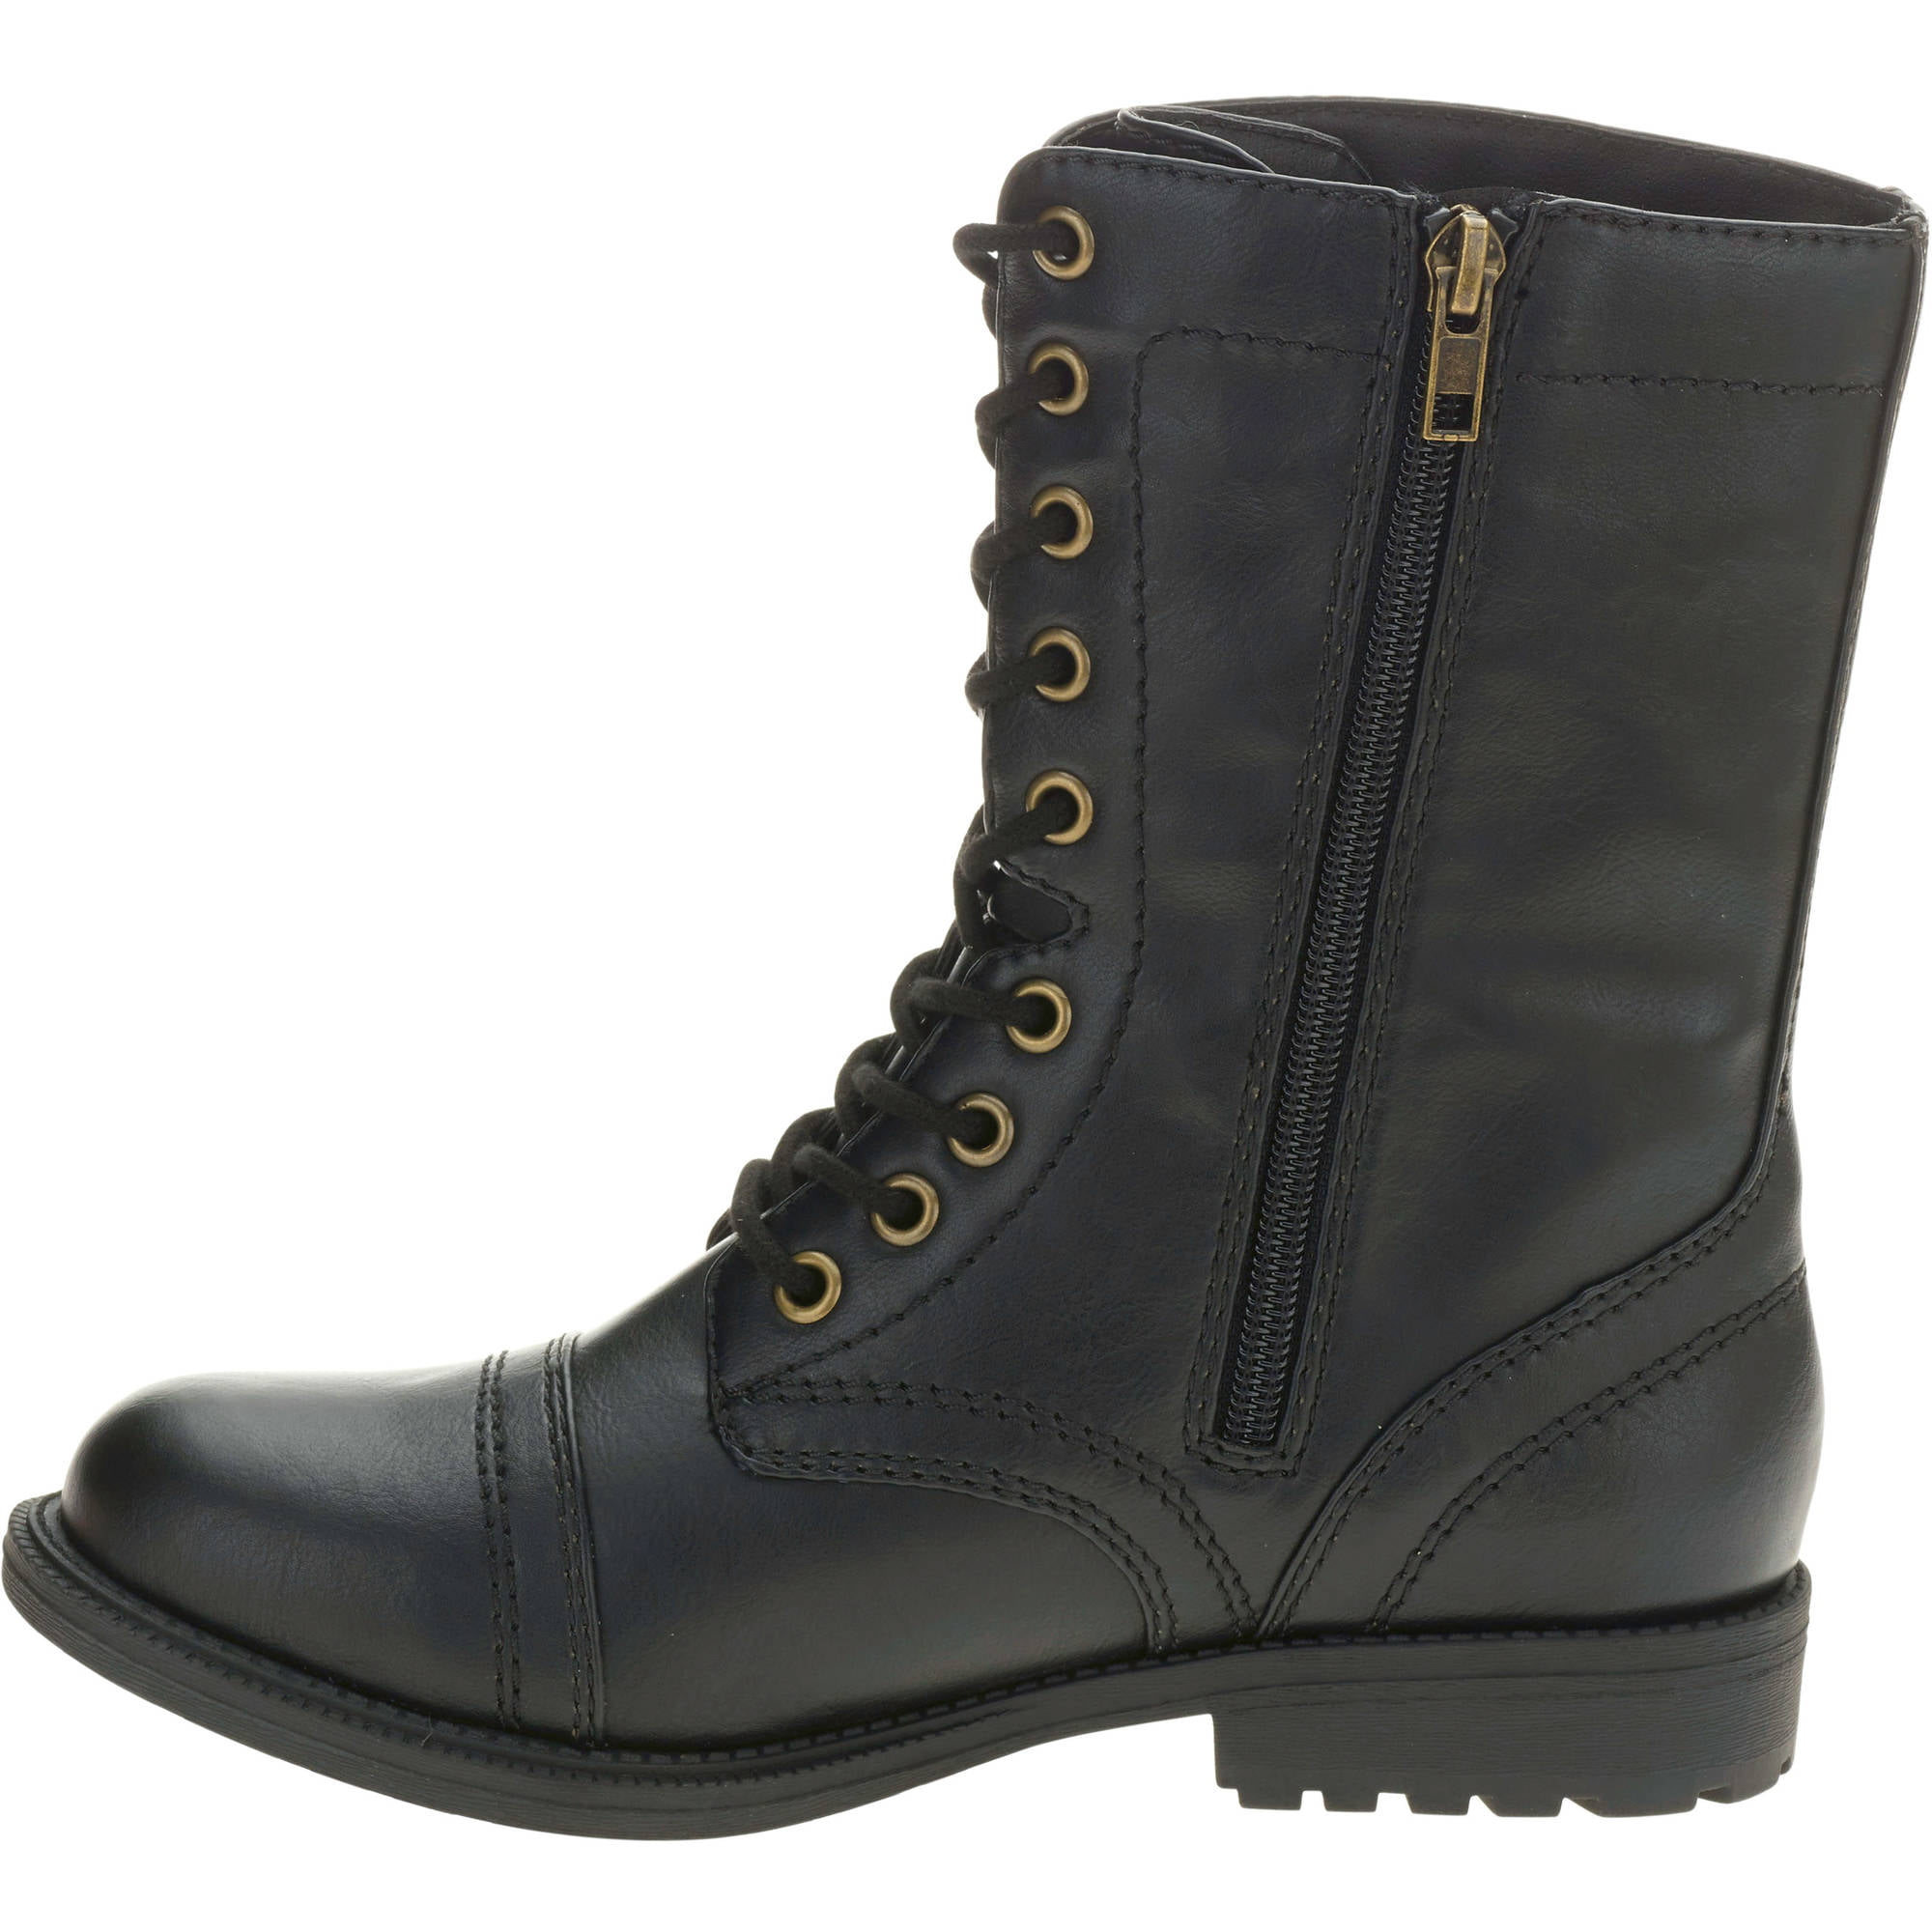 Beautiful LADIES WOMENS COMBAT ARMY MILITARY BIKER FLAT LACE UP WORKER ANKLE BOOTS SIZE | EBay